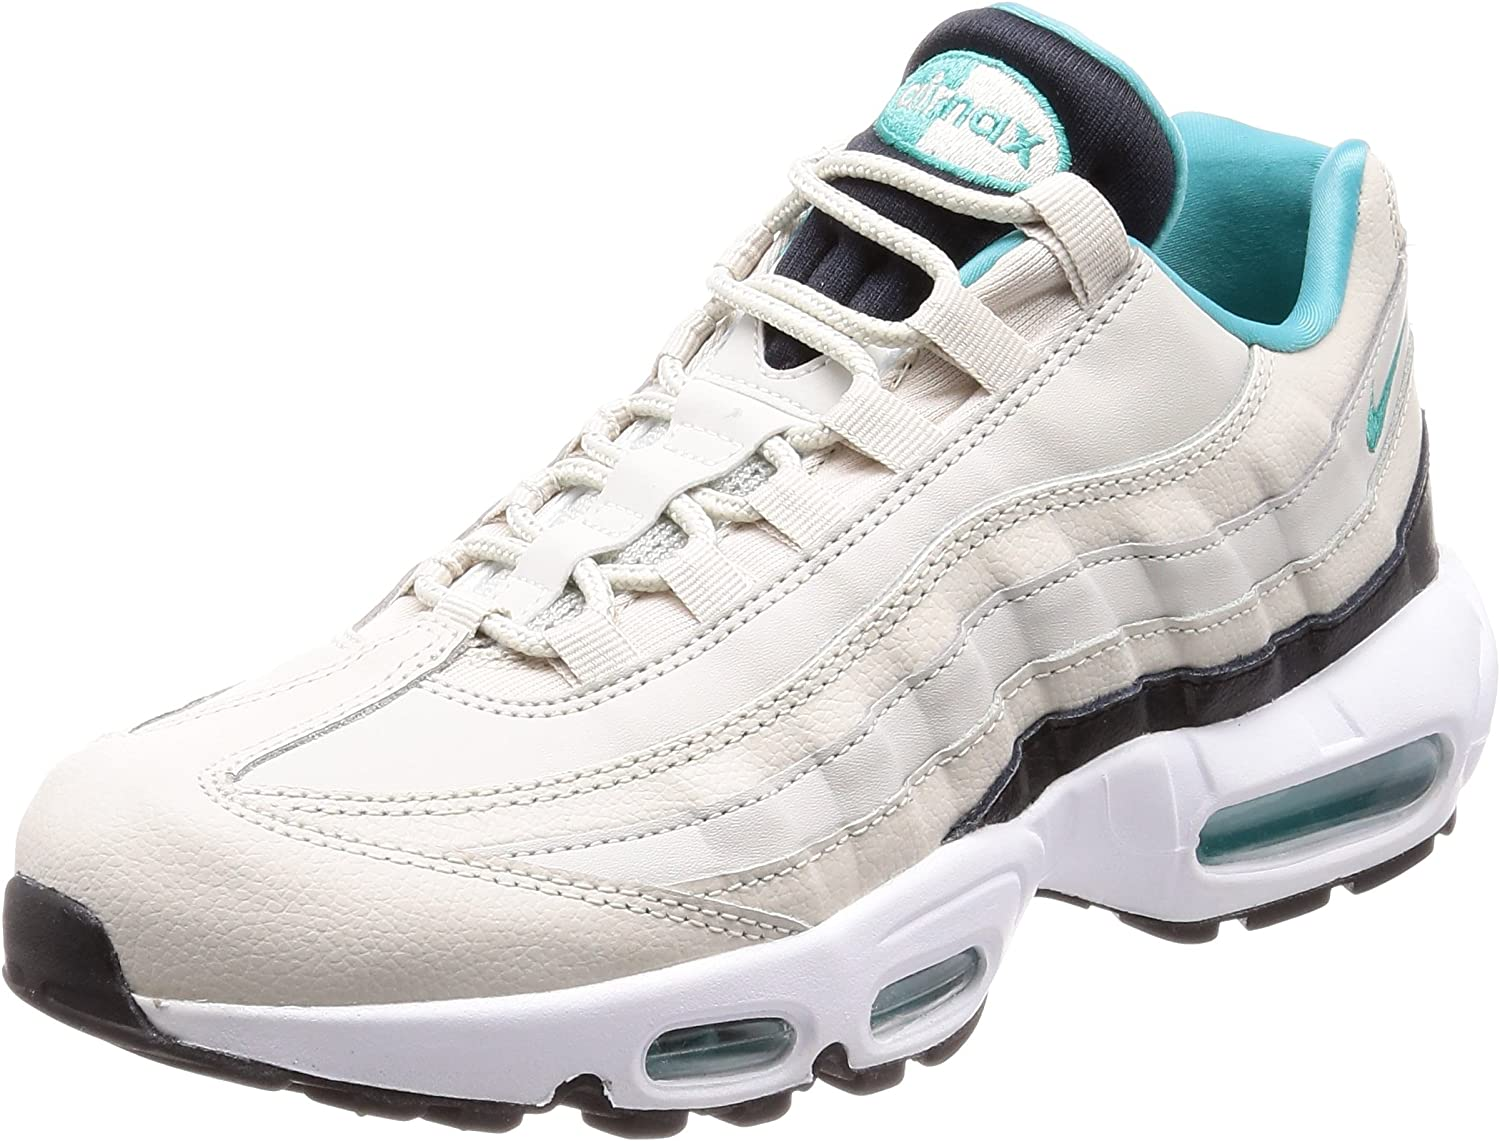 Nike Air Max 95 Essential Mens Style : 749766 Mens 749766 027 Size 10